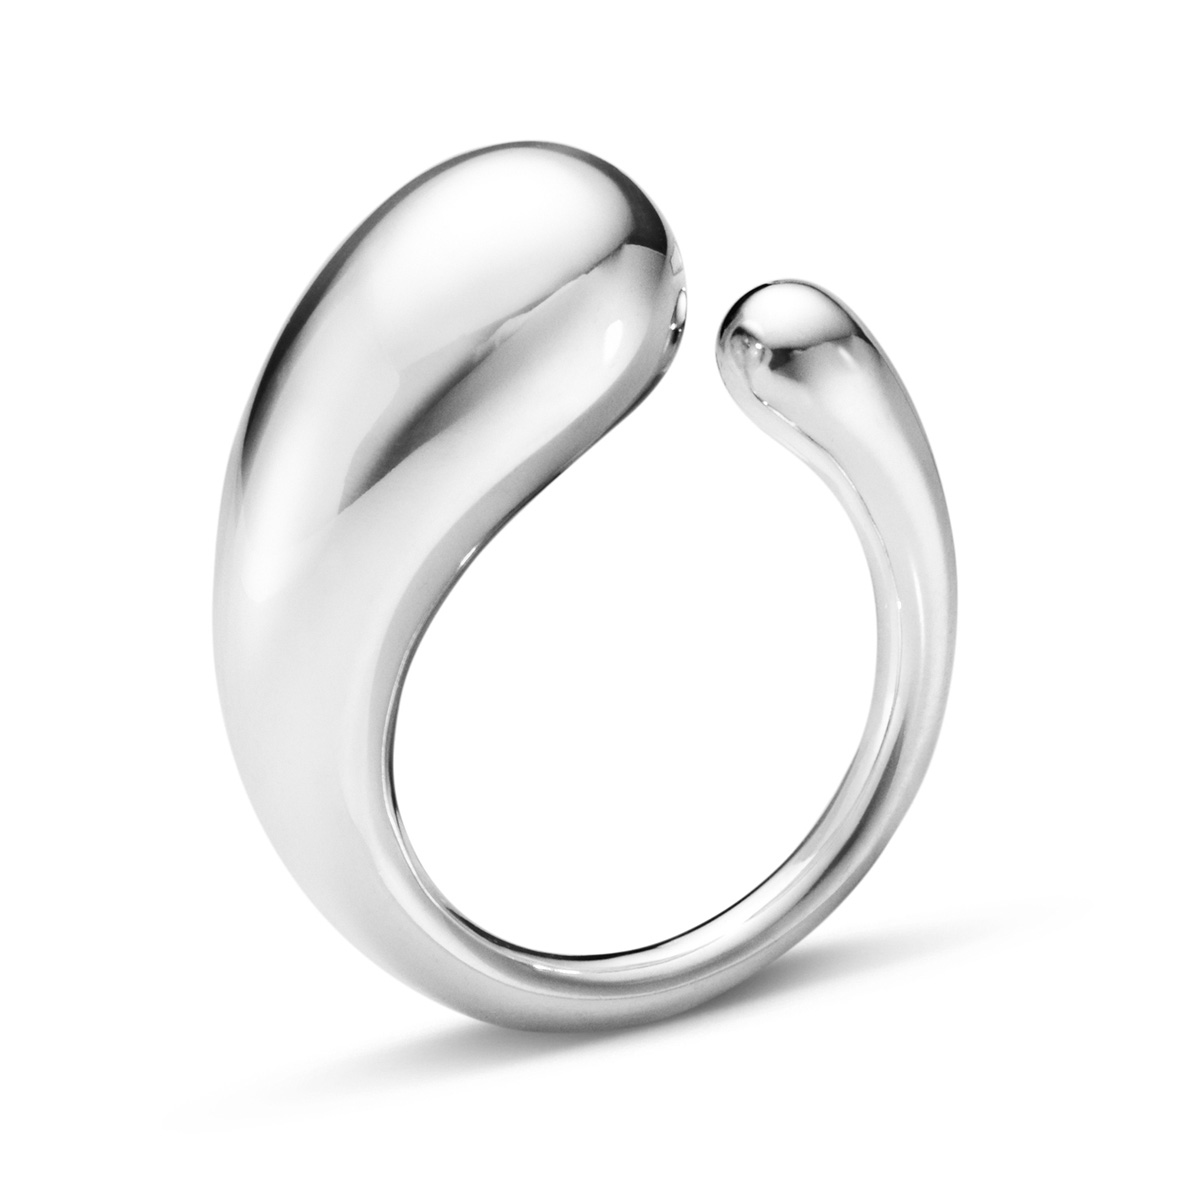 Mestergull Mercy Ring i sølv - Stor GEORG JENSEN Mercy Ring